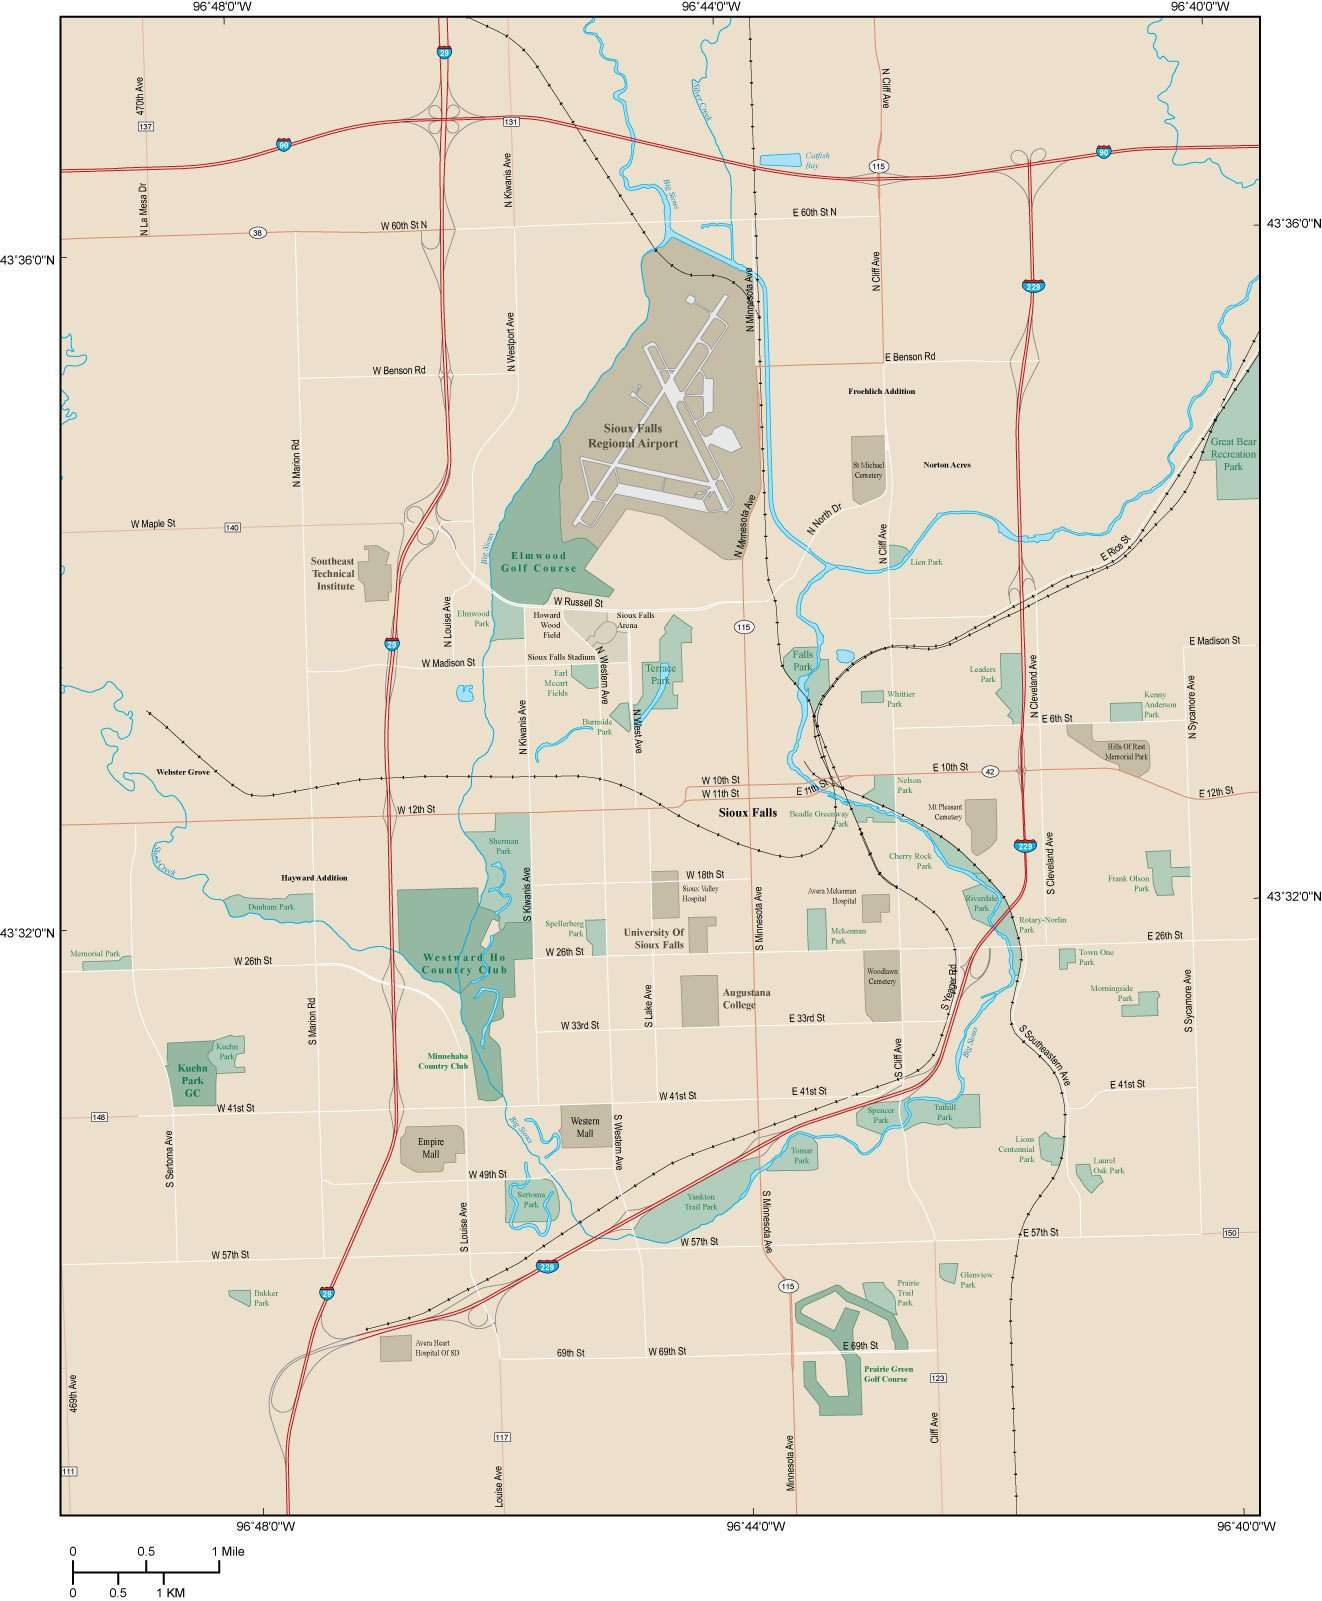 Sioux Falls SD Map - Metro Area with Major Roads on mn map, vg map, wy map, co map, il map, wi map, tx map, cif map, canada map, usa map, penh map, nd map, kr map, id map, pal map, south dakota highway map, ne map, tn map, et map, eastern ia map,